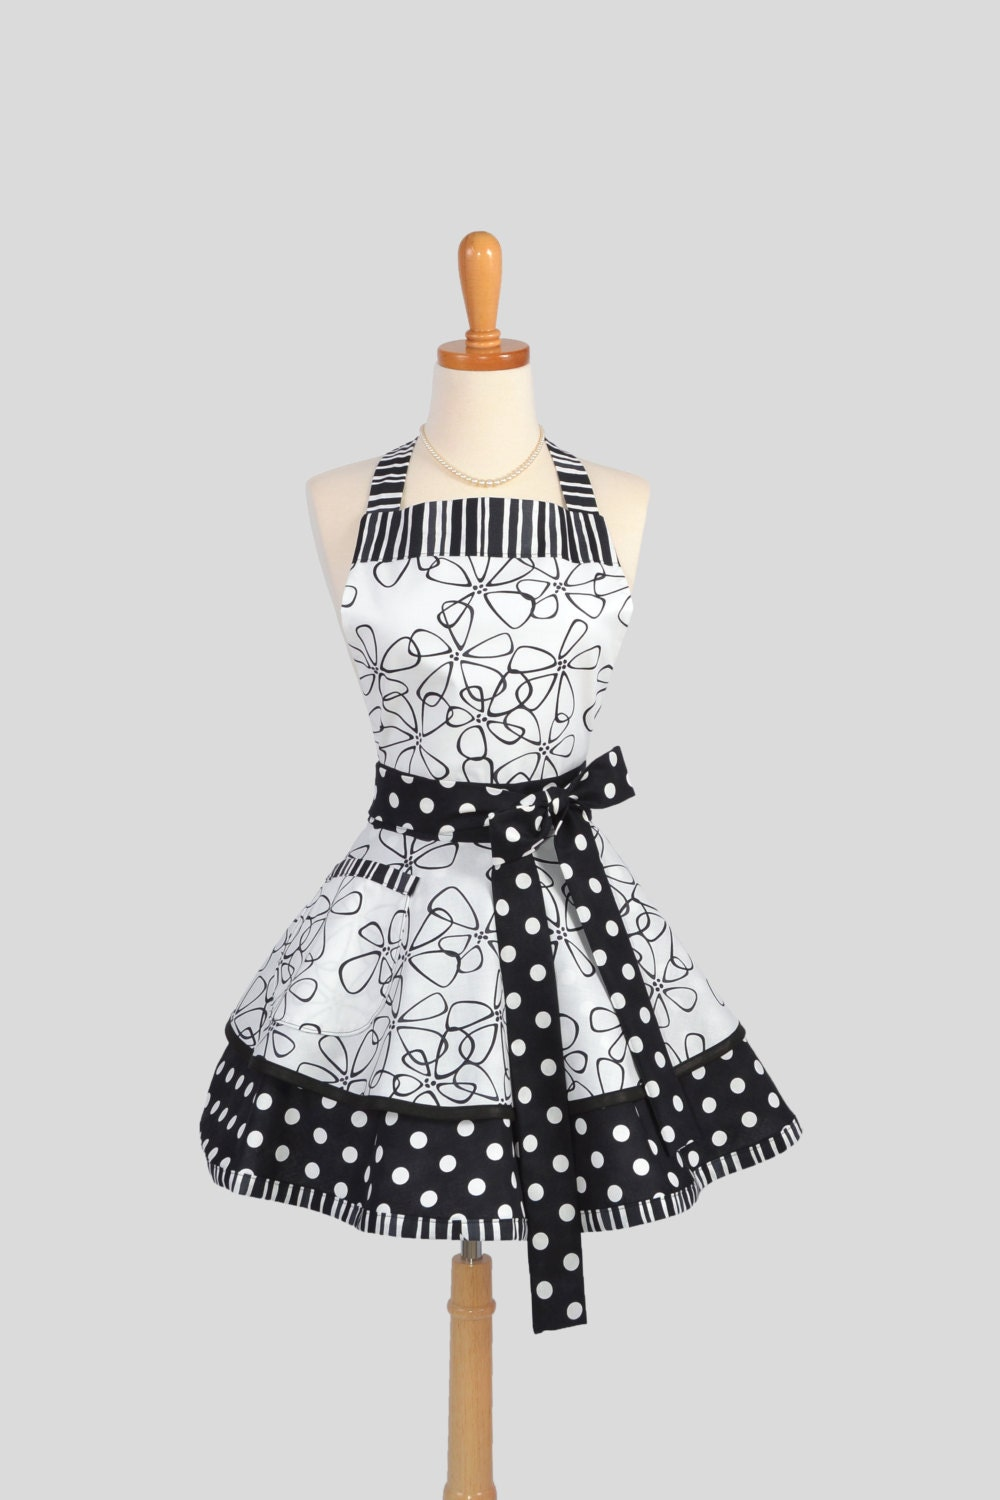 Ruffled Retro Apron .  Sexy Womens Apron in Black and White Dots and Stripes Handmade Full Kitchen Apron